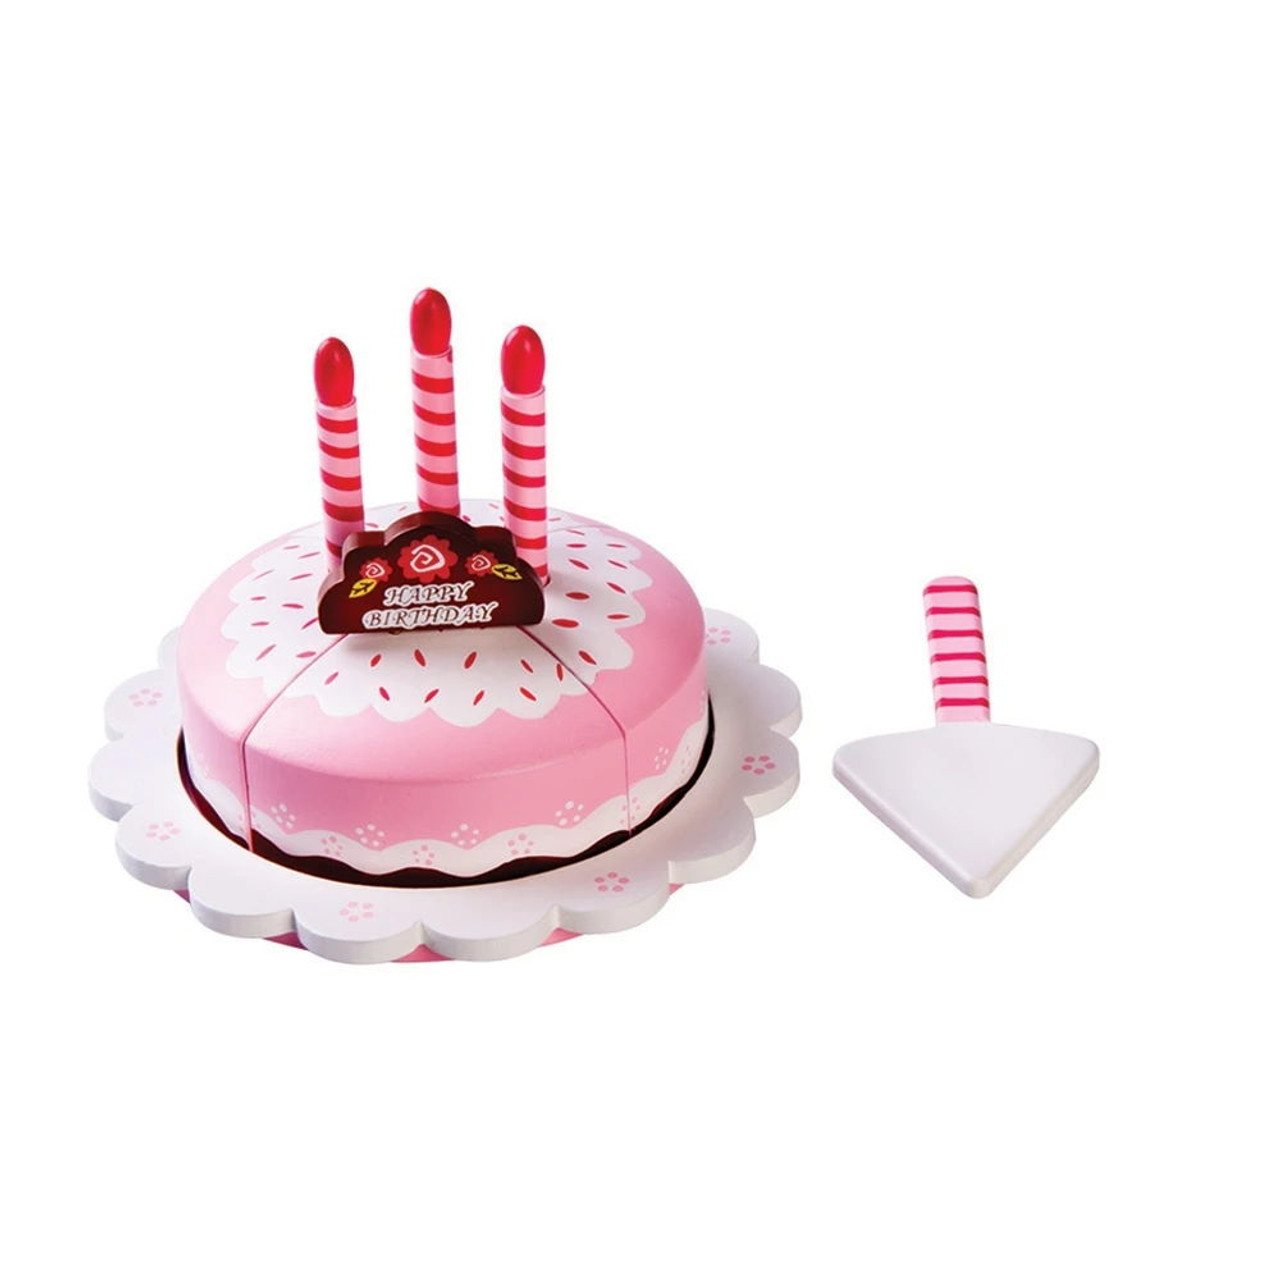 Toyslink Birthday Cake at Baby Barn Discounts A beautifully decorated wooden birthday cake, perfect for pretend play parties.